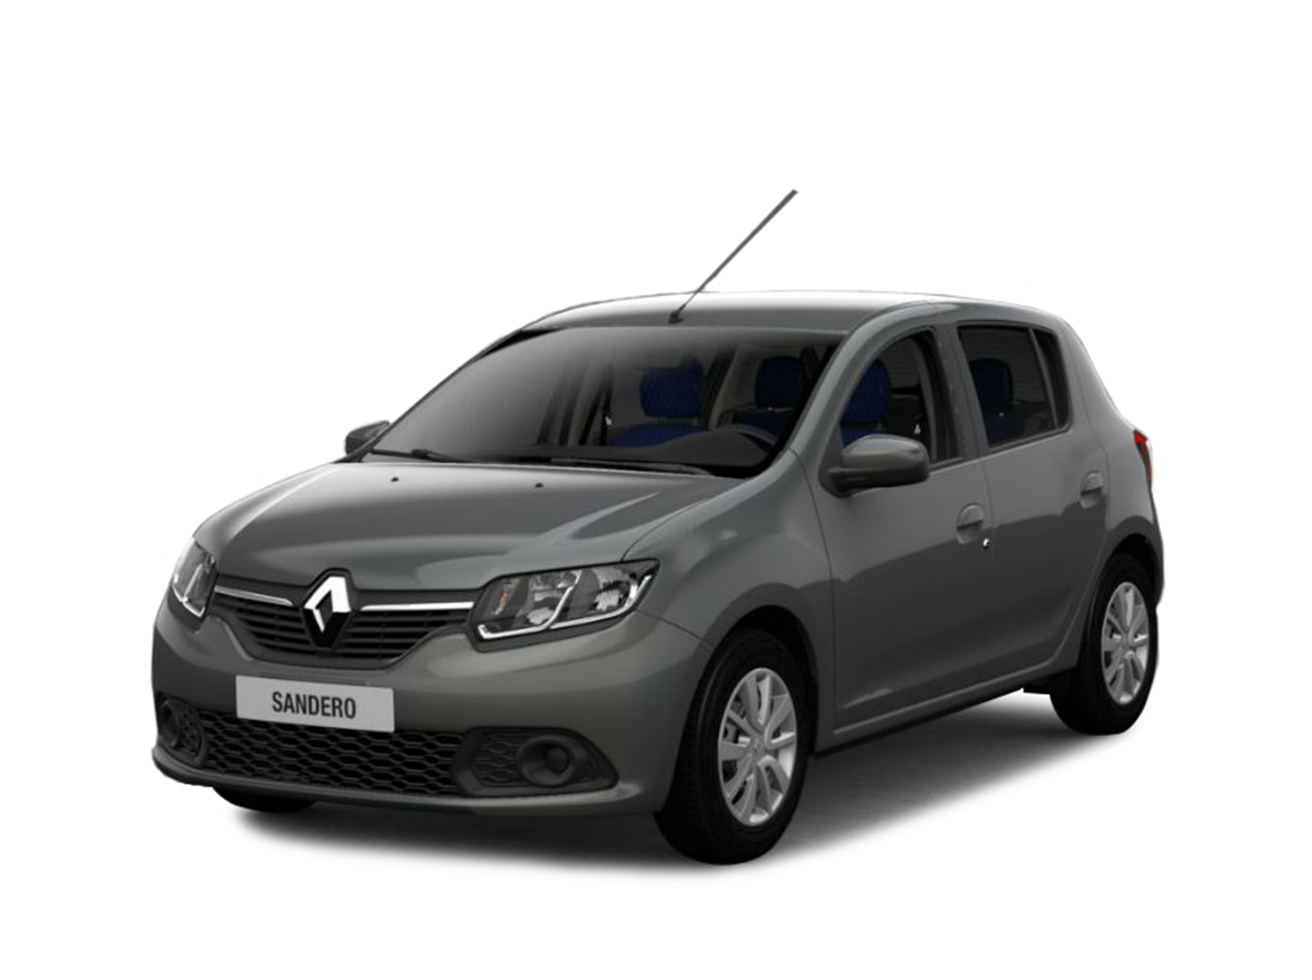 RENAULT - SANDERO - 1.0 12V SCE FLEX EXPRESSION MANUAL